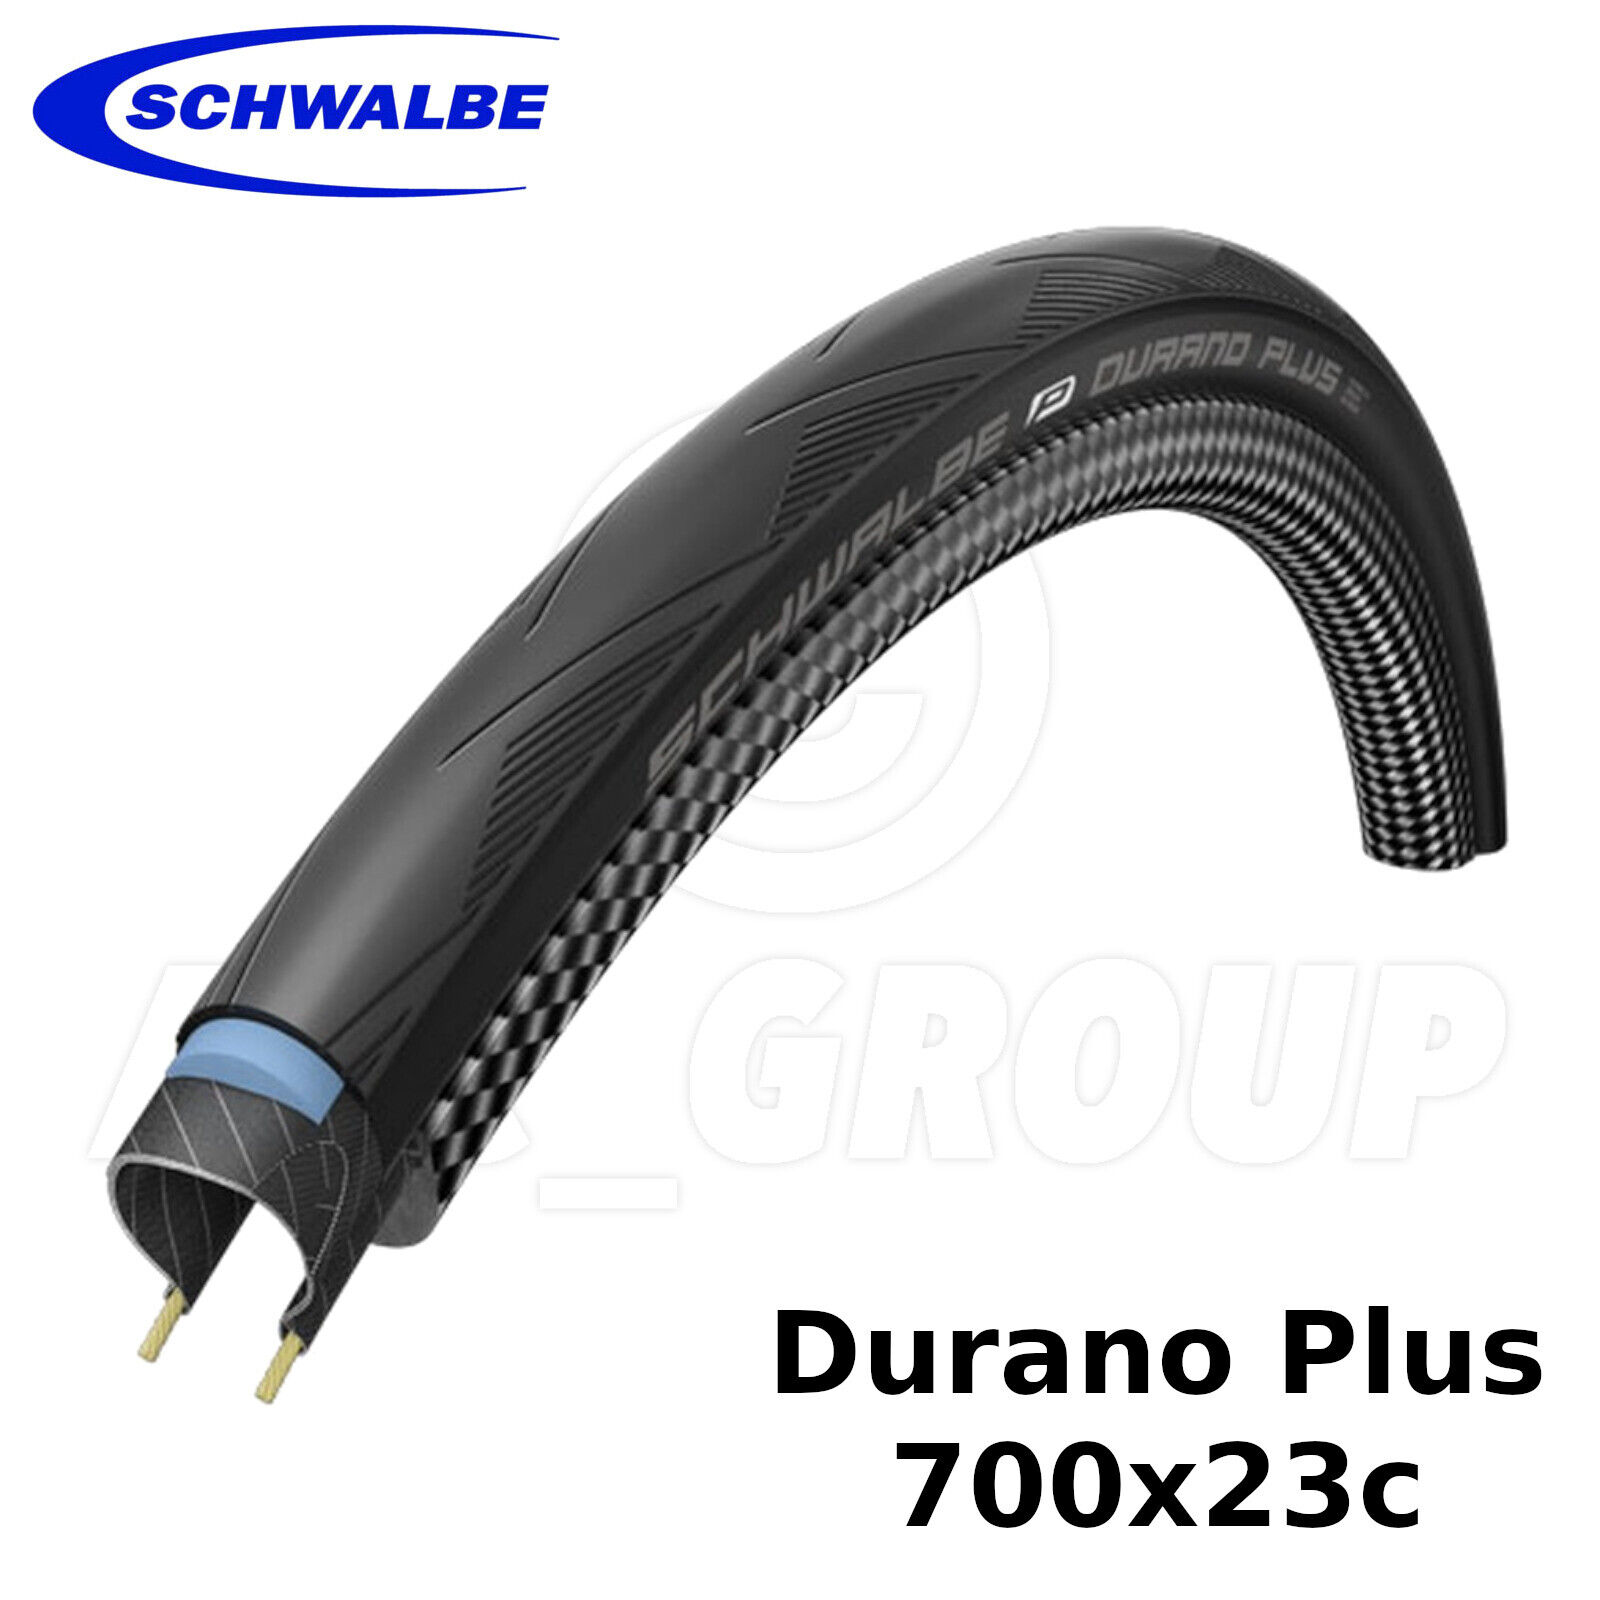 Schwalbe Durano Plus, SmartGuard, Wired, Road Bike Tyre - 700x23c (23-622)